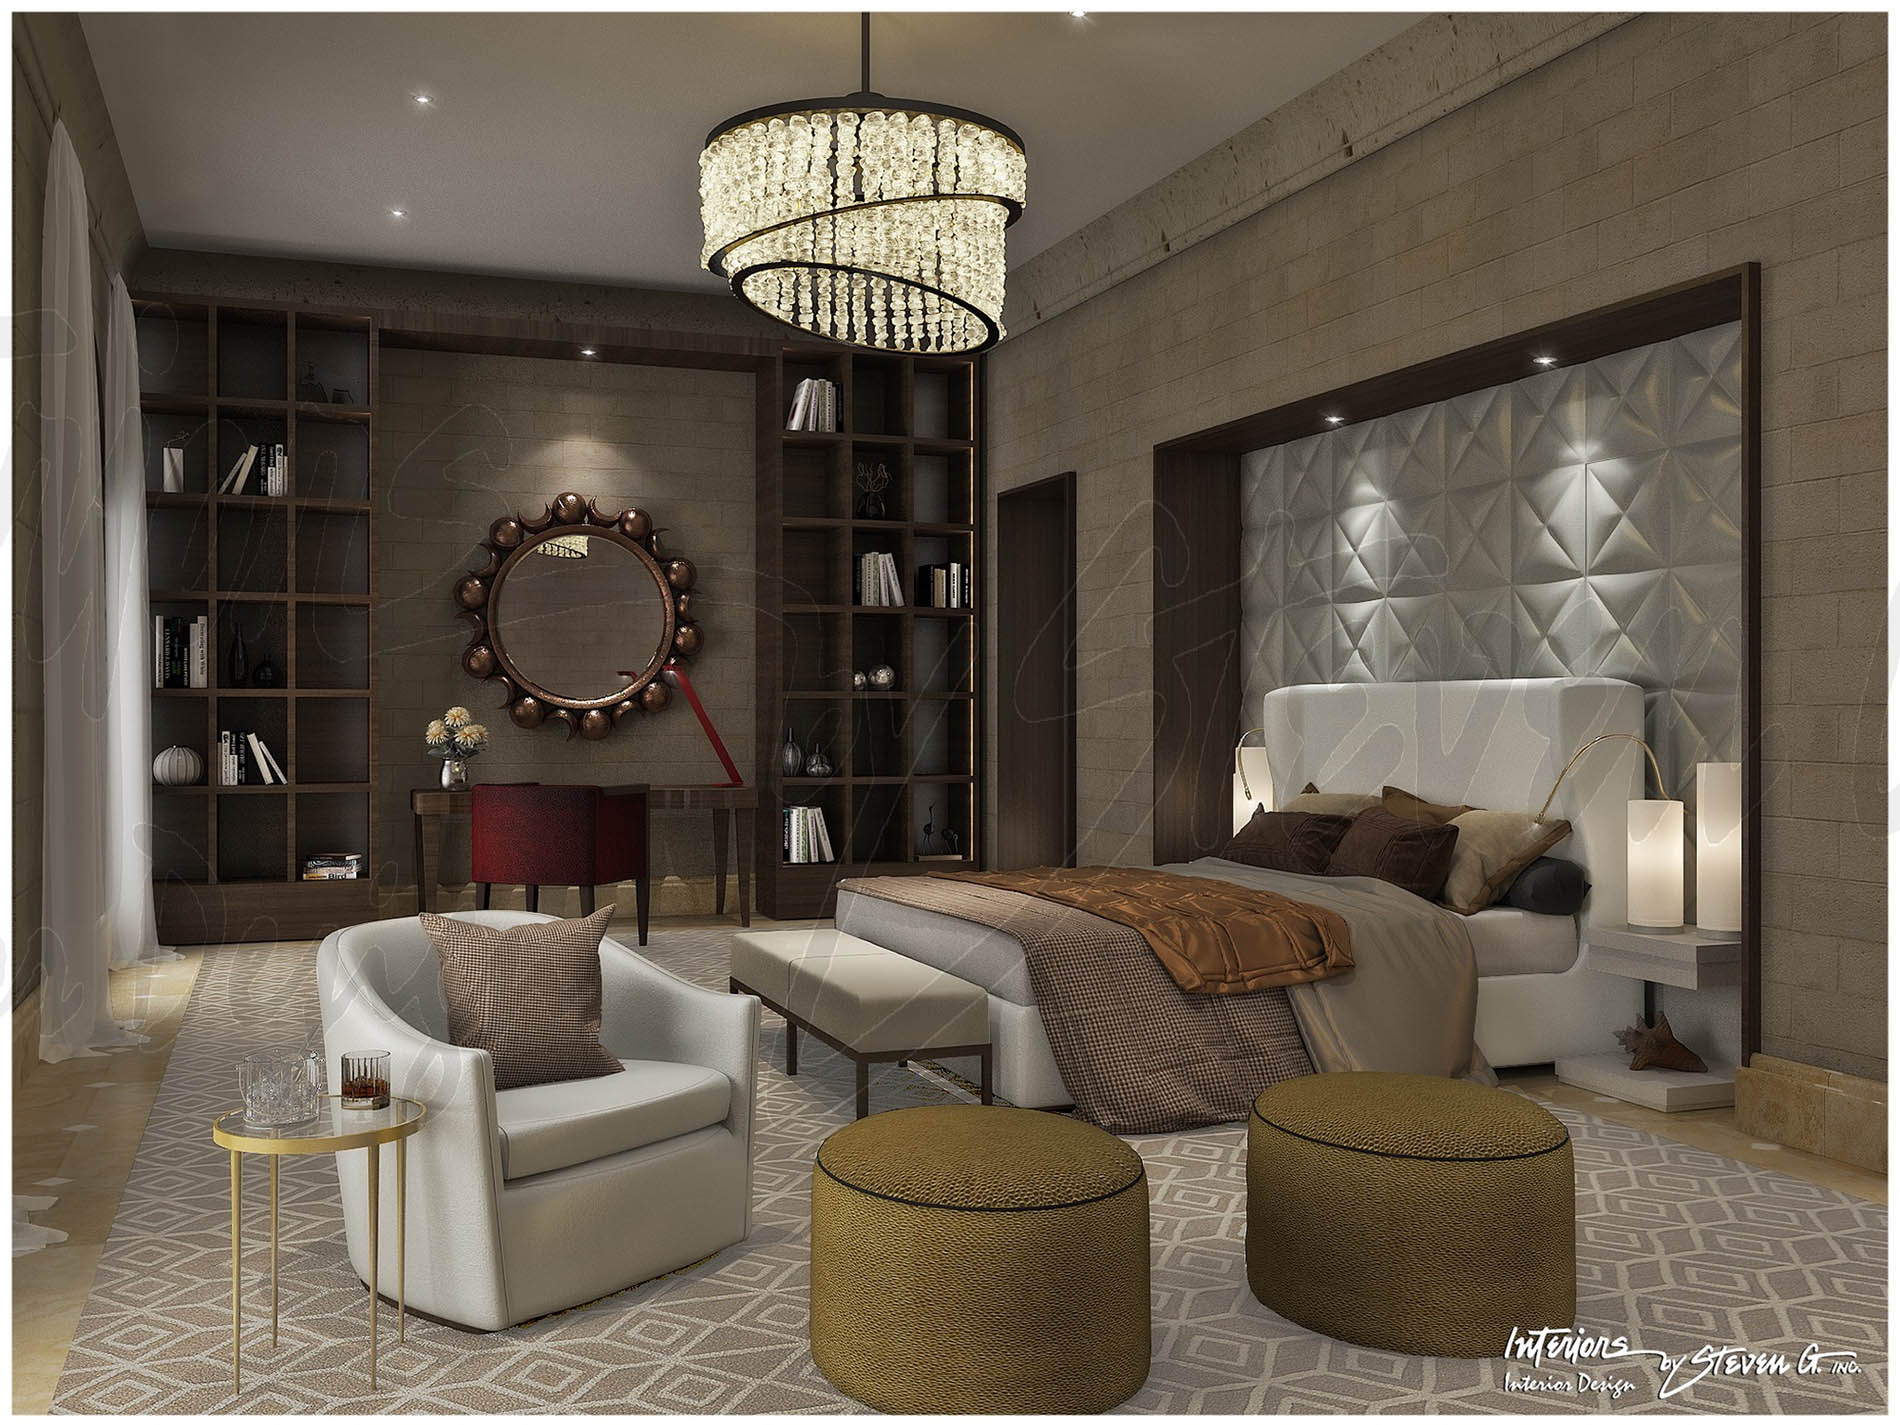 Palazzetti St Peter Barbados Designs Interiors By Steven G